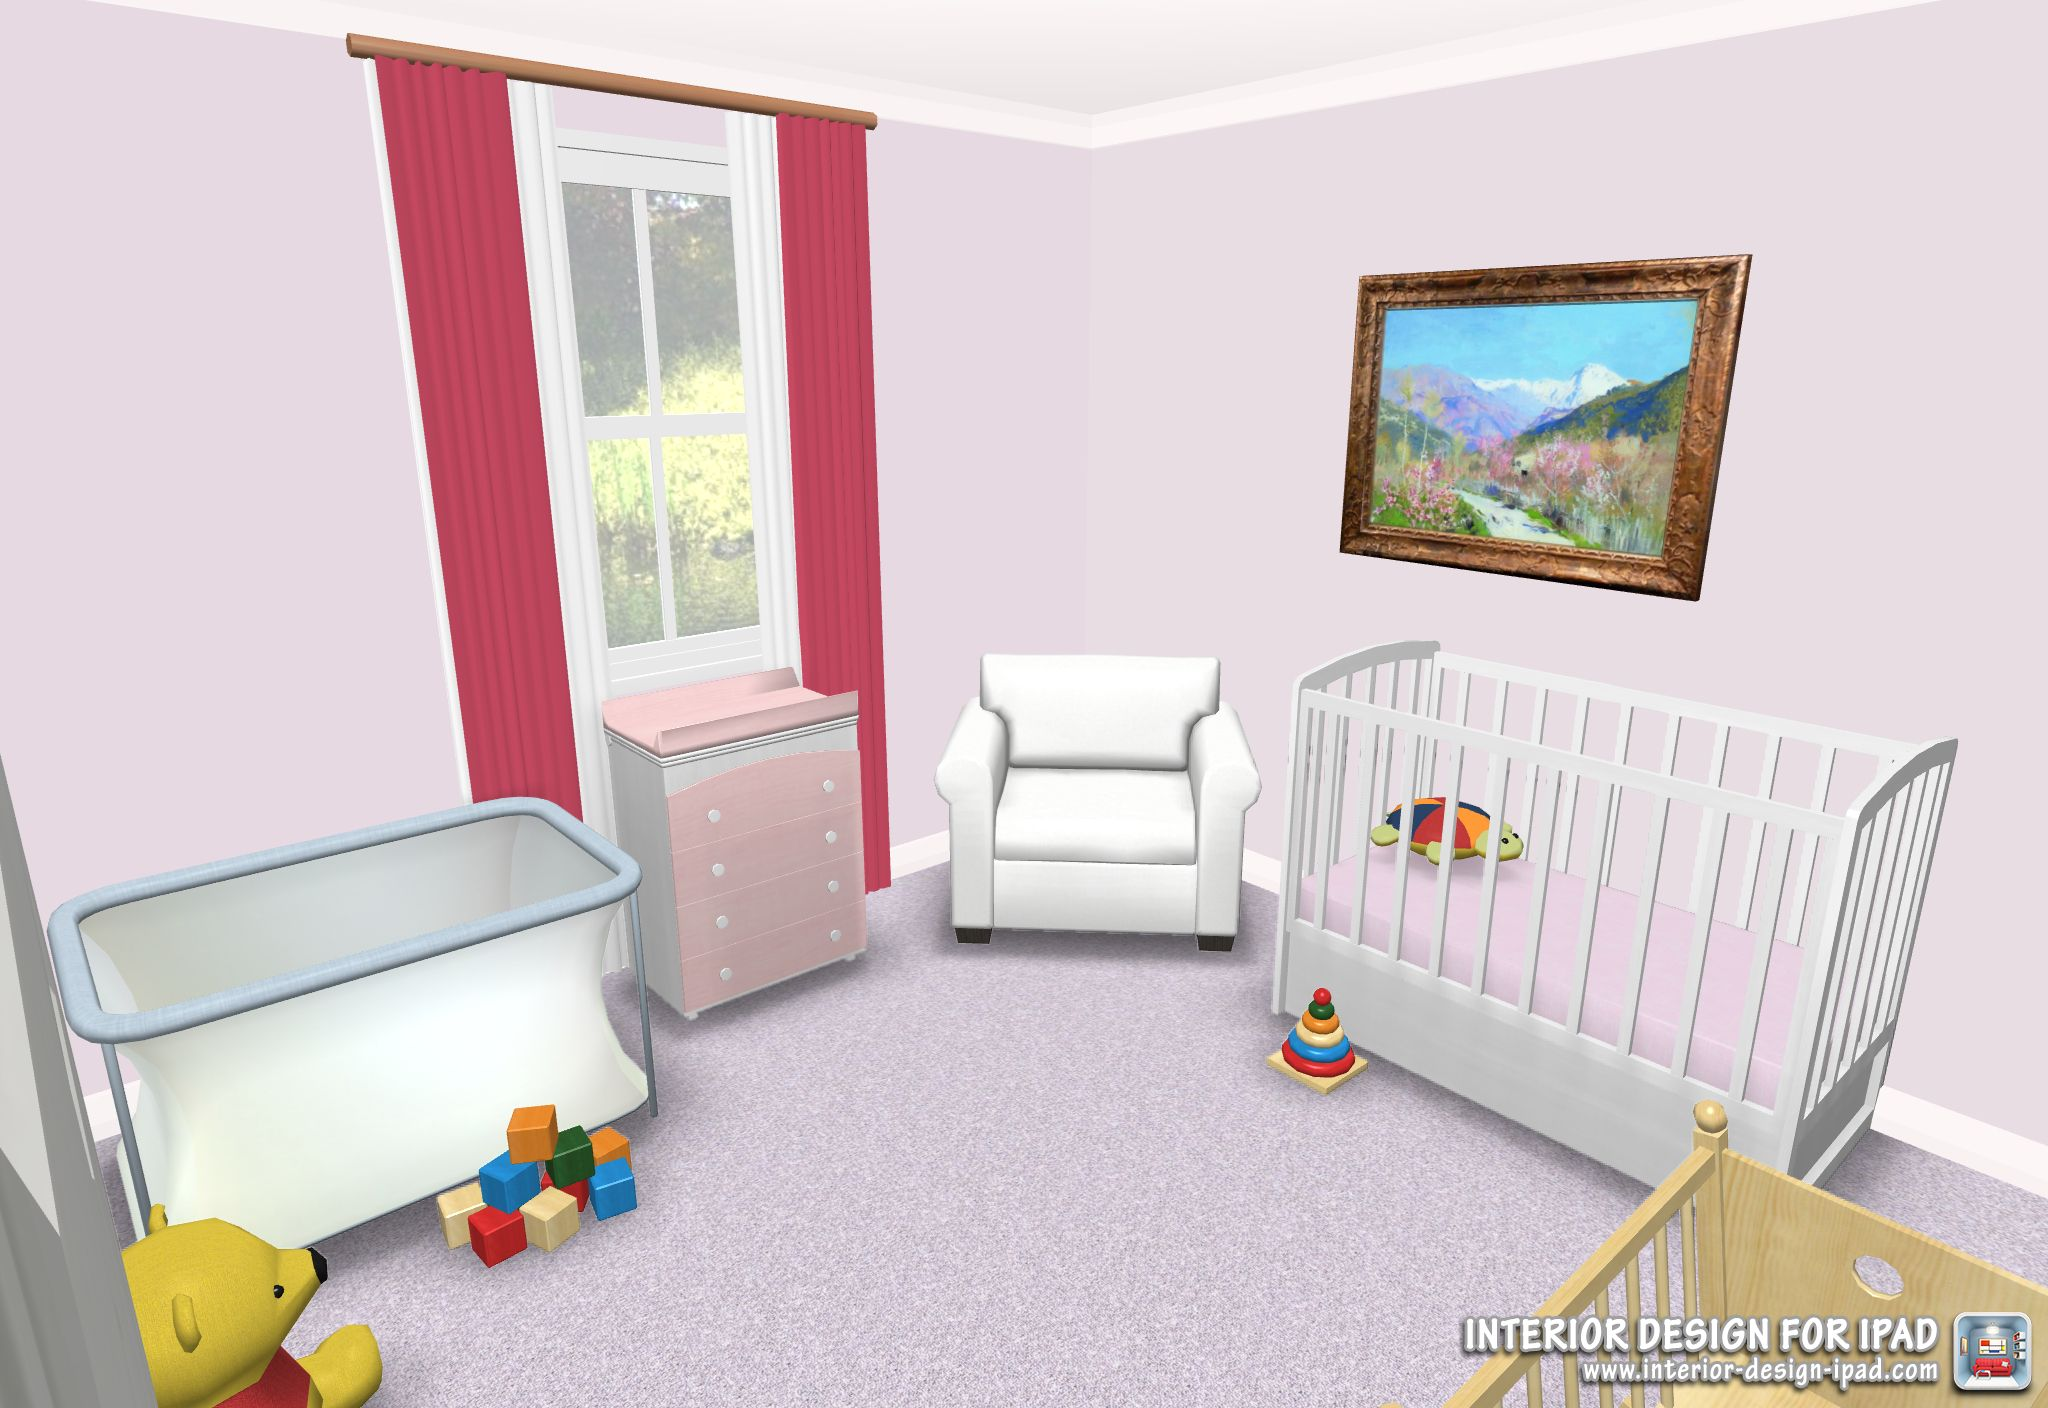 Create Your Baby S Room With Interior Design For Ipad App Http Interior Design Ipad Com Interior Design Design Interior